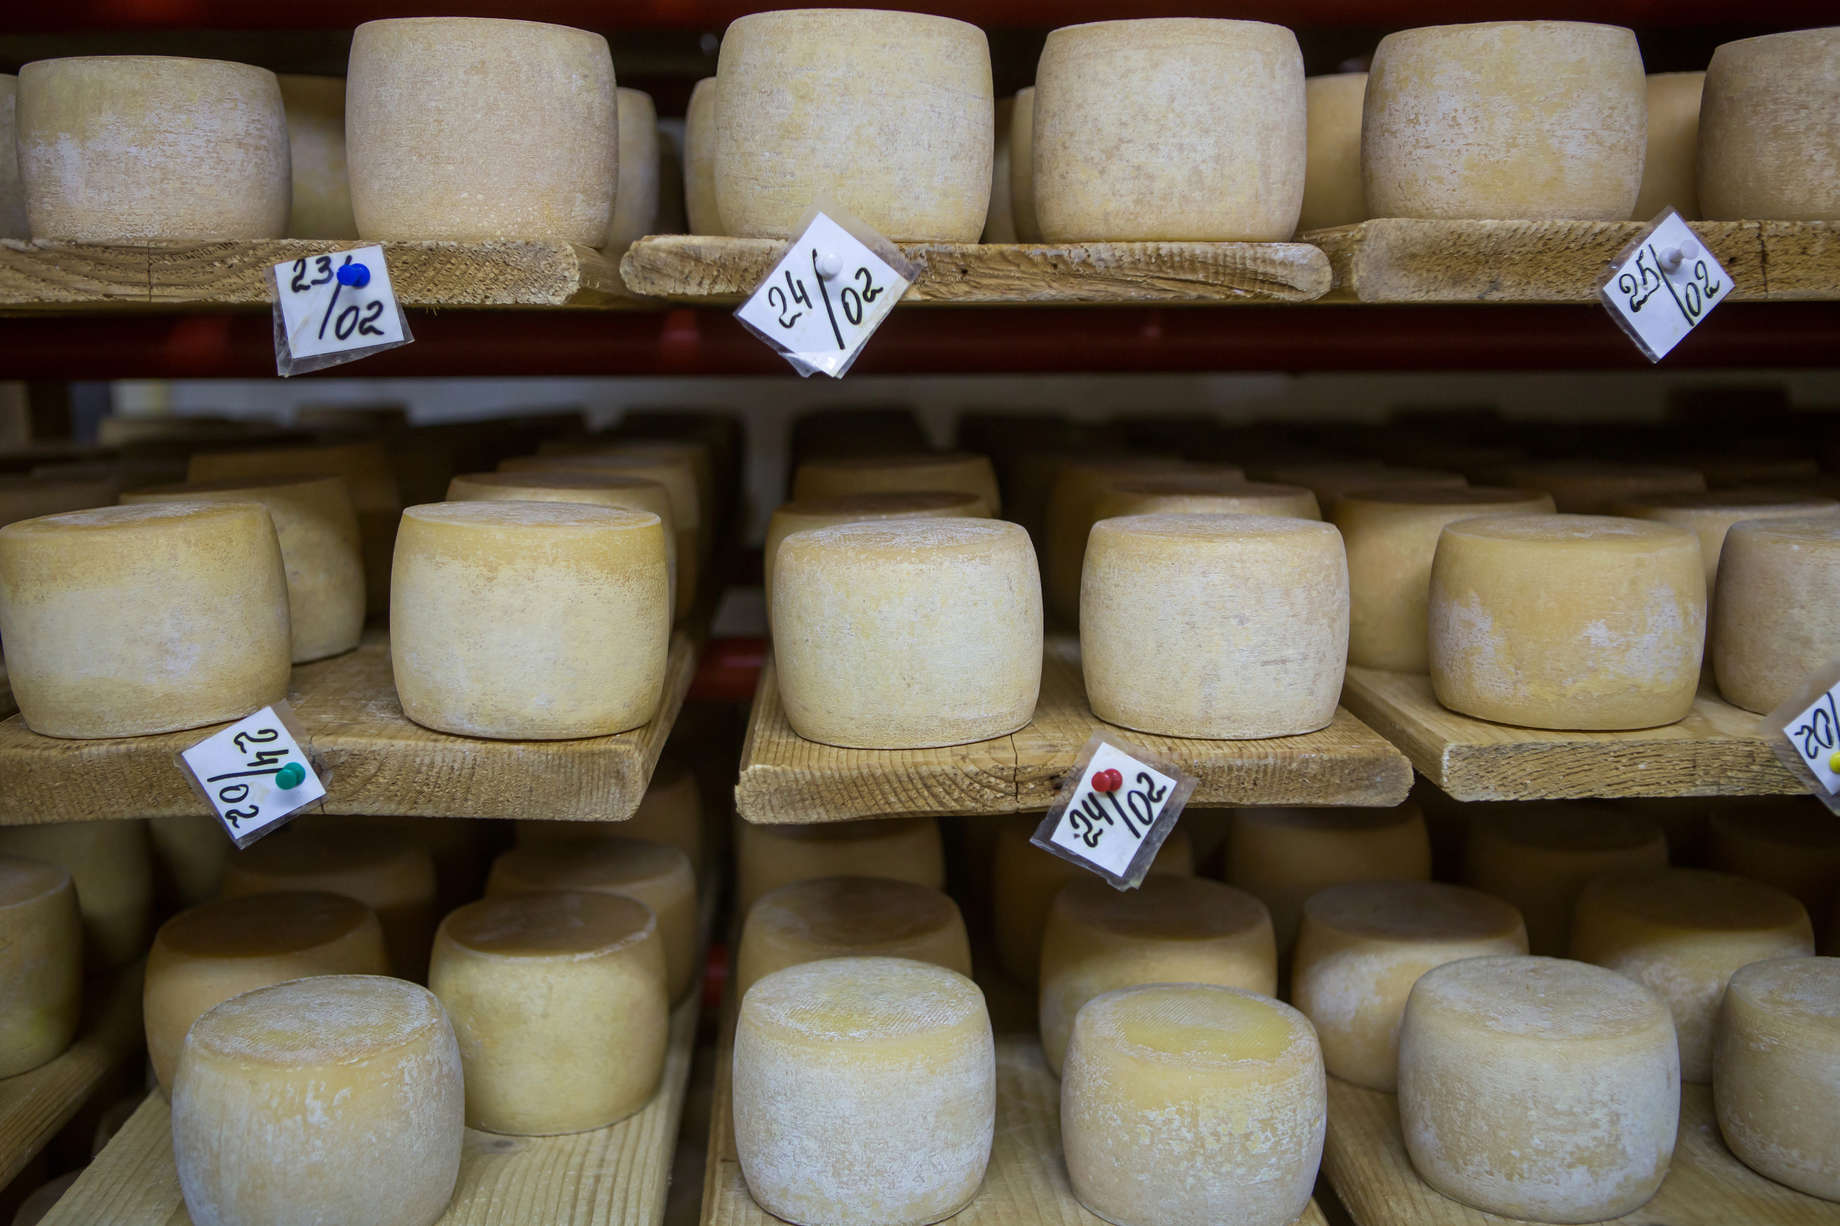 How Long Does Cheese Last in the Fridge? Cheese Expiration Dates